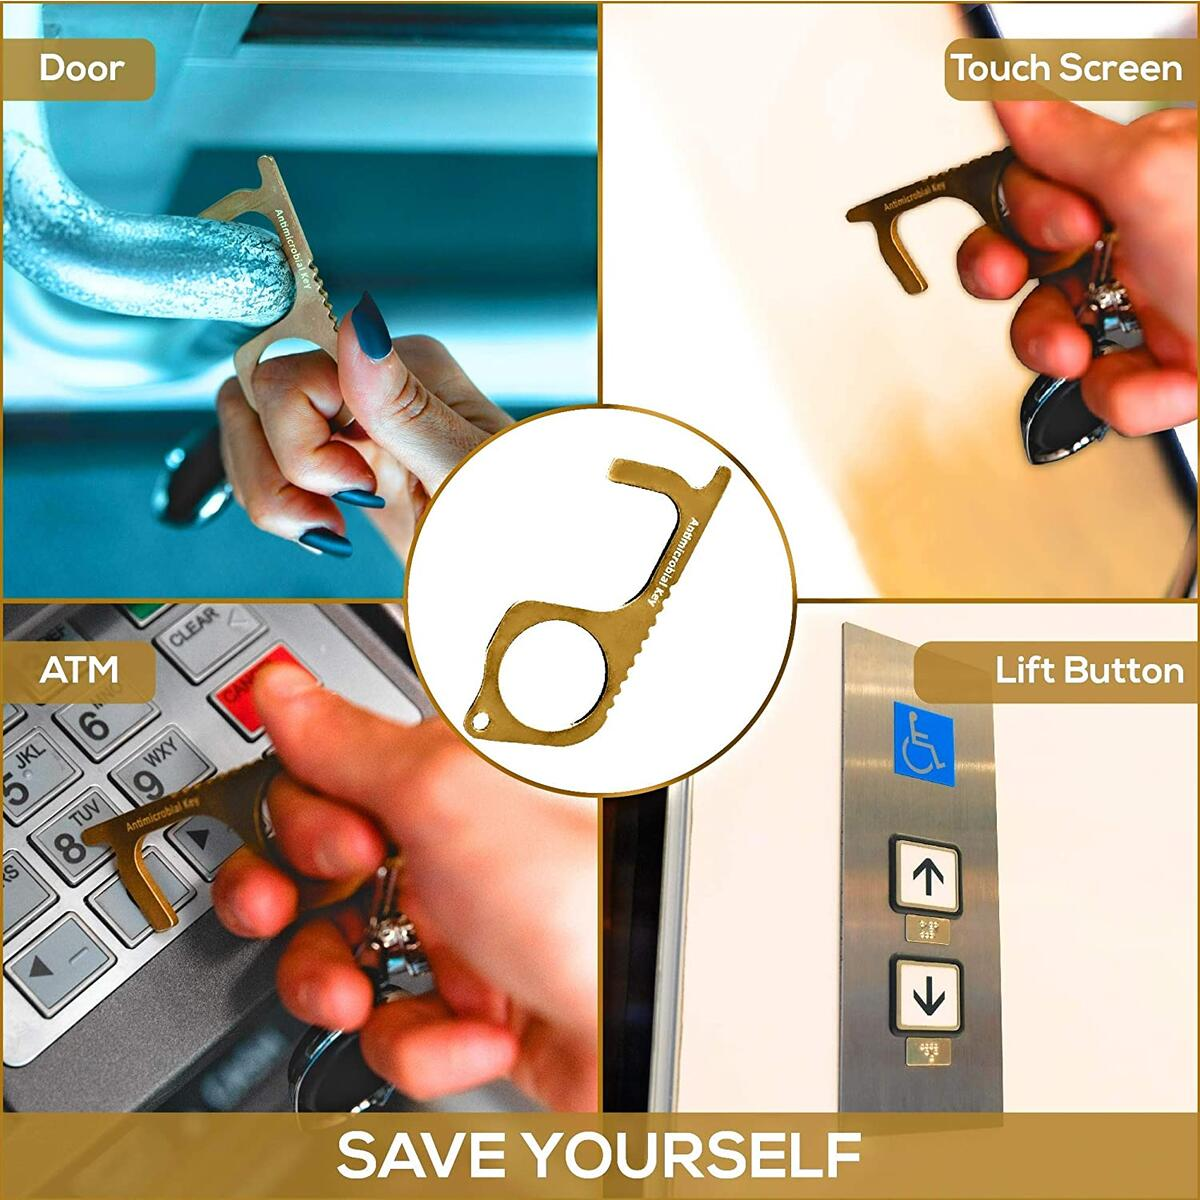 WiserKey-Touchless Hand Hygiene Germkey Avoid Touching Germs Great for Closing & Opening Bathroom Doors, Sinks, Elevator Buttons, Gas Stations, Toilet Doors, Brass Key Hook Keeps Hands Clean.